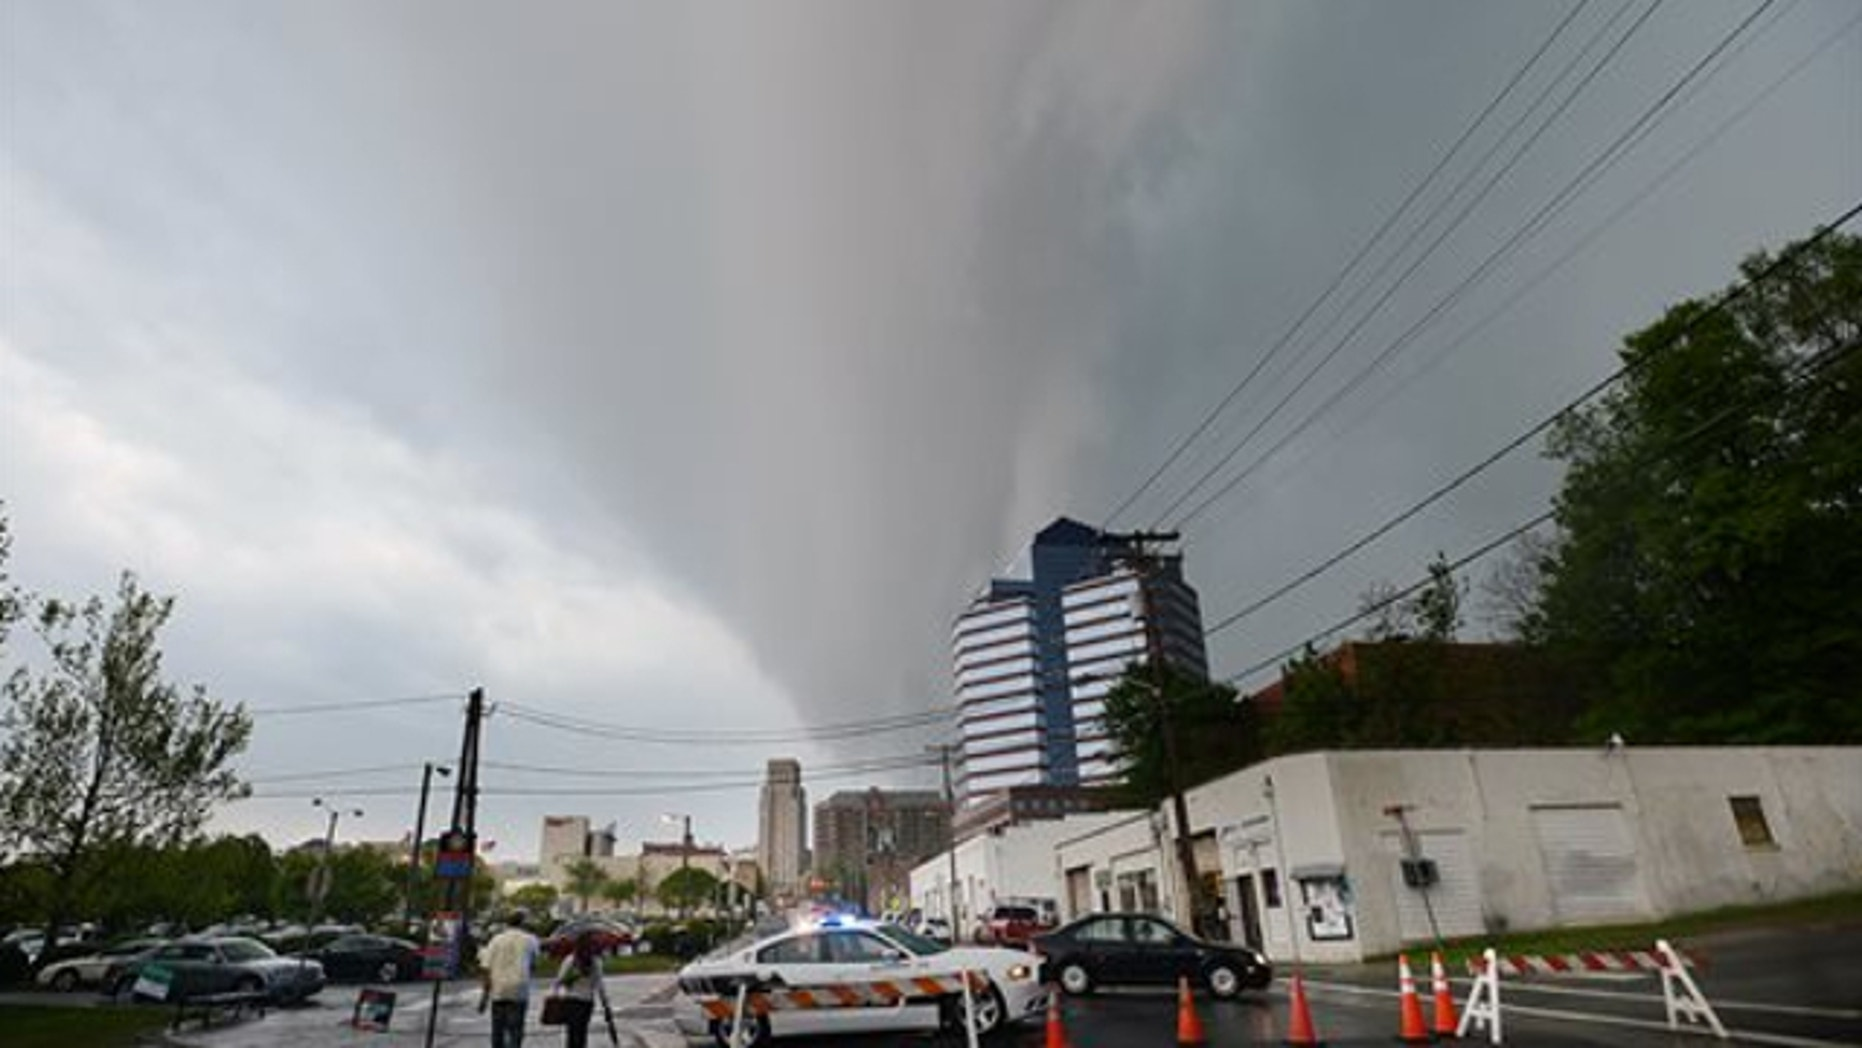 April 25, 2014: Menacing dark clouds brought rain, wind and lightning above downtown Durham North Carolina, as cold and warm fronts clashed, making a dangerous weather situation.